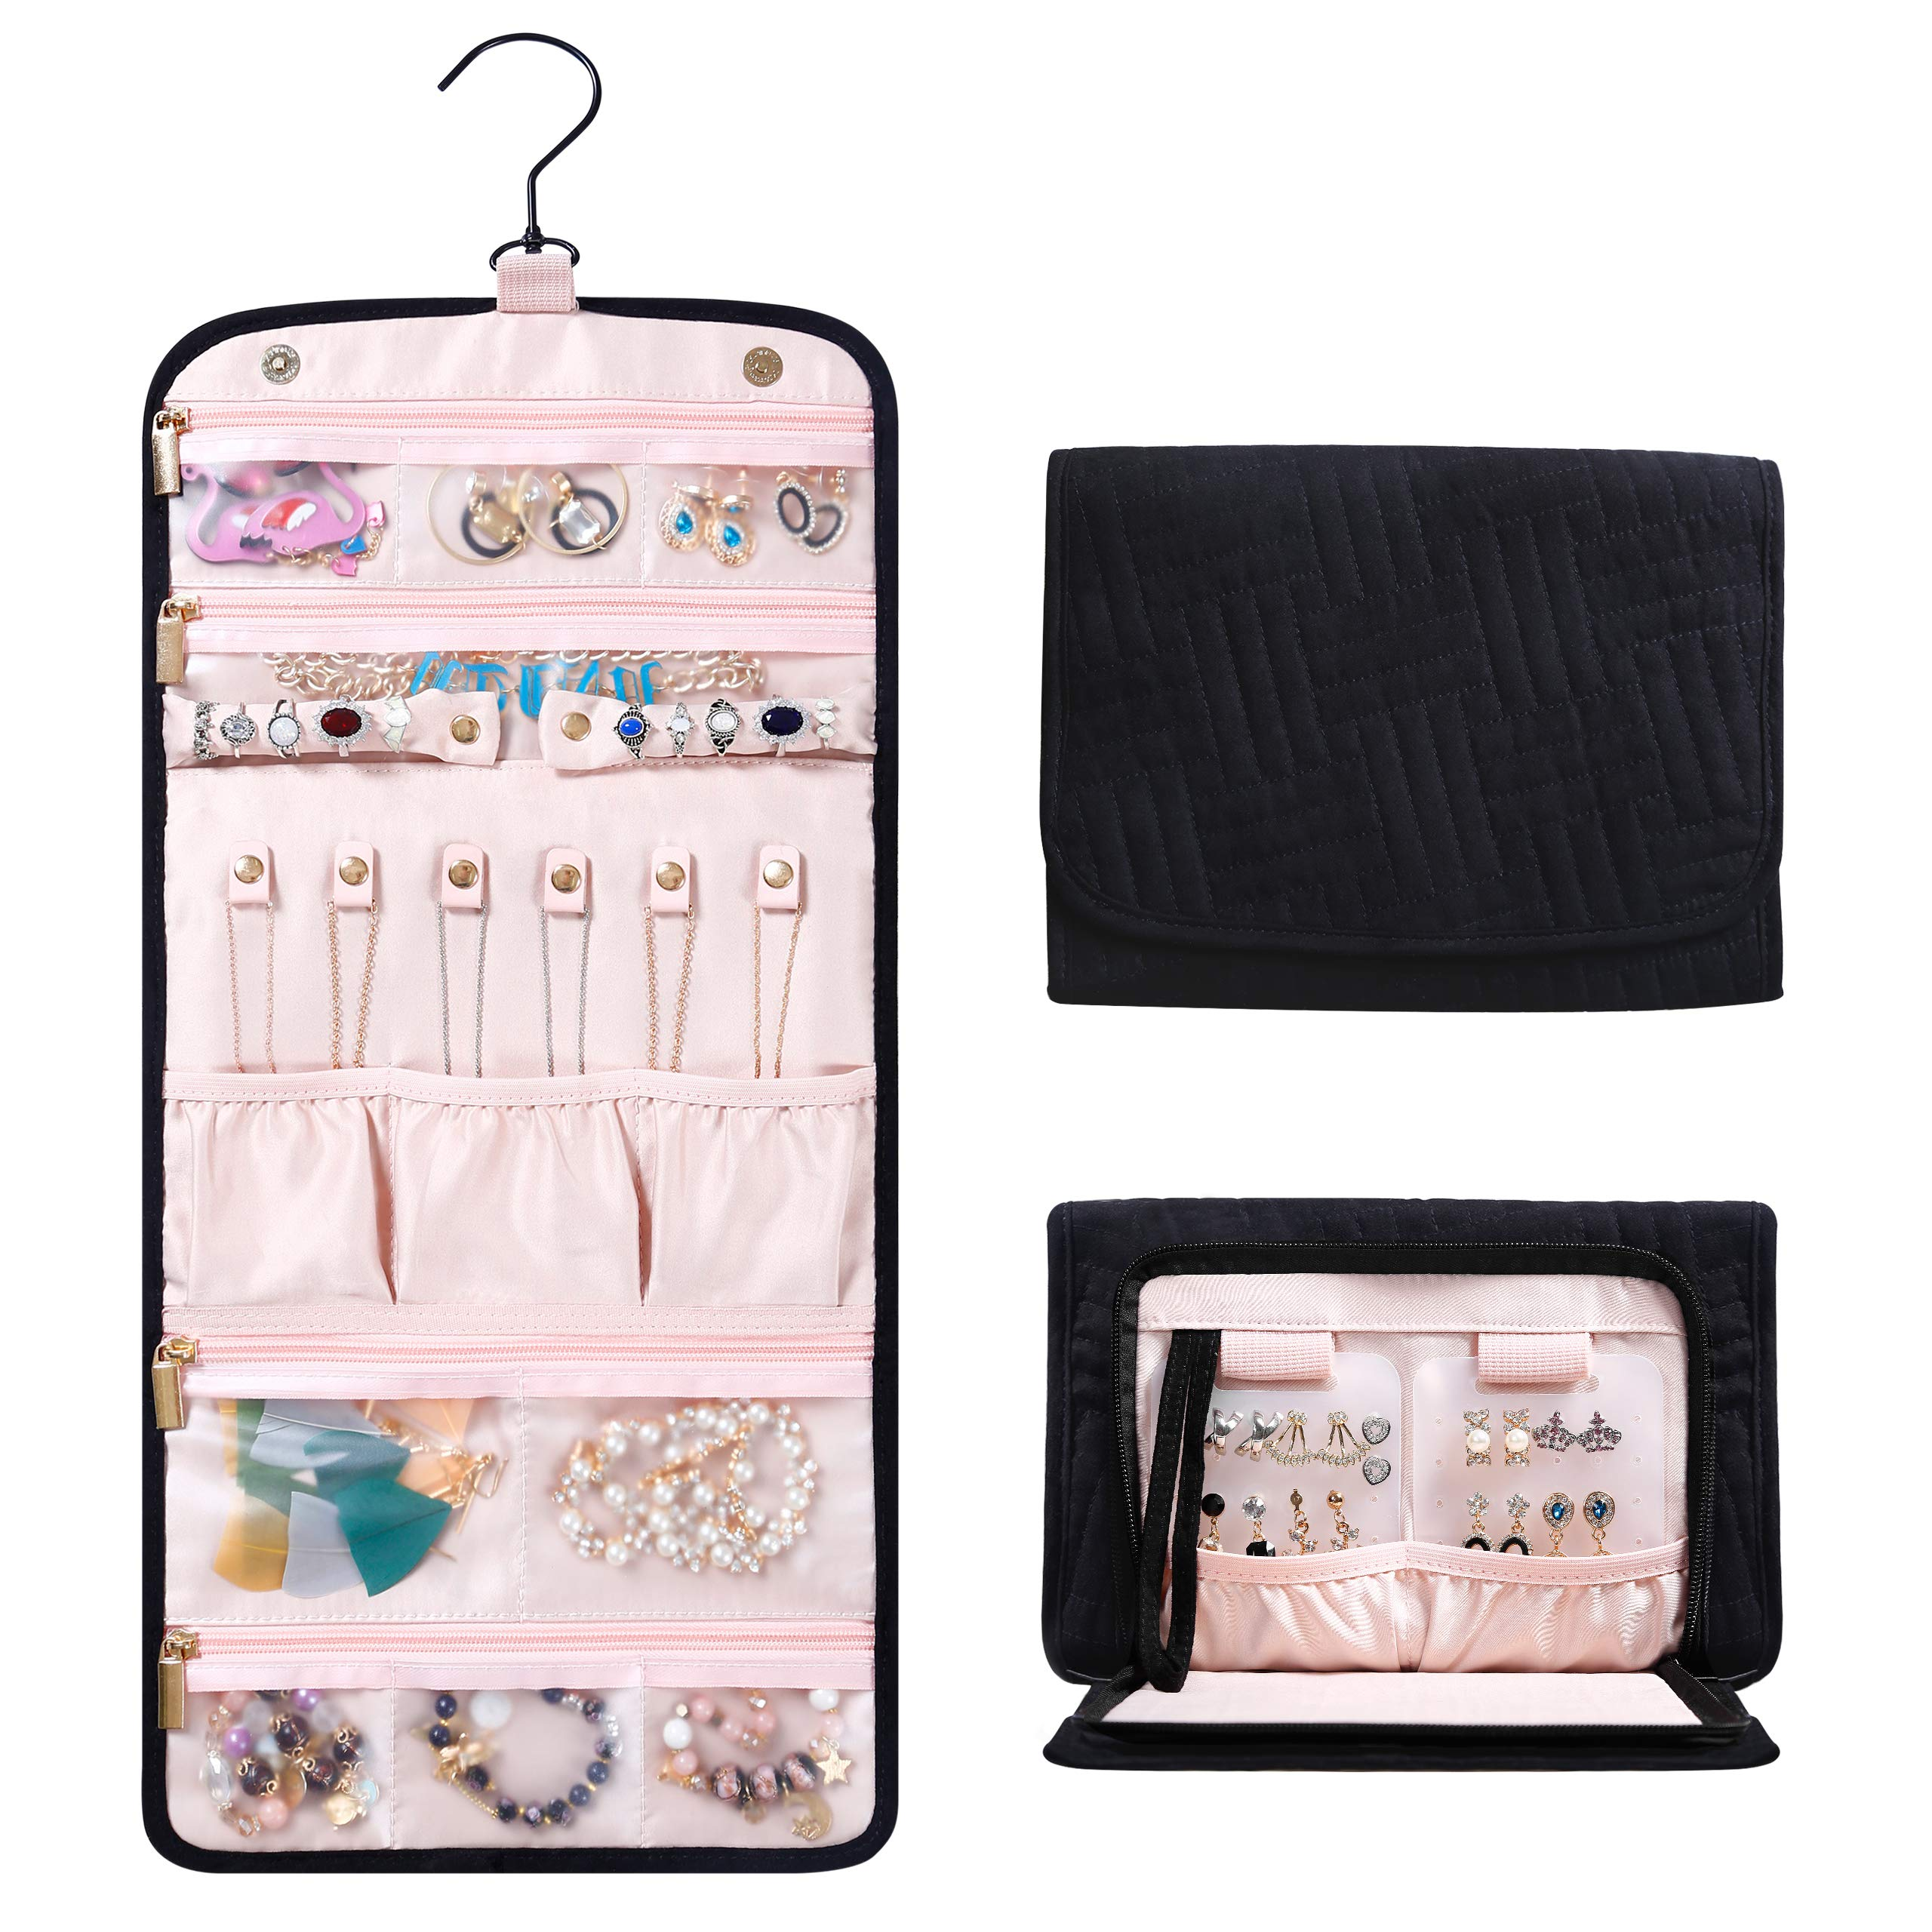 Travel Hanging Jewelry Organizer with Zippered Pockets - 10.2''L x 7.8''W x 1.2''H Jewelry Bag for Necklace, Earrings, Rings, Bracelets - Women Quilted Jewelry Box Organizer - Roll Foldable Jewelry Case